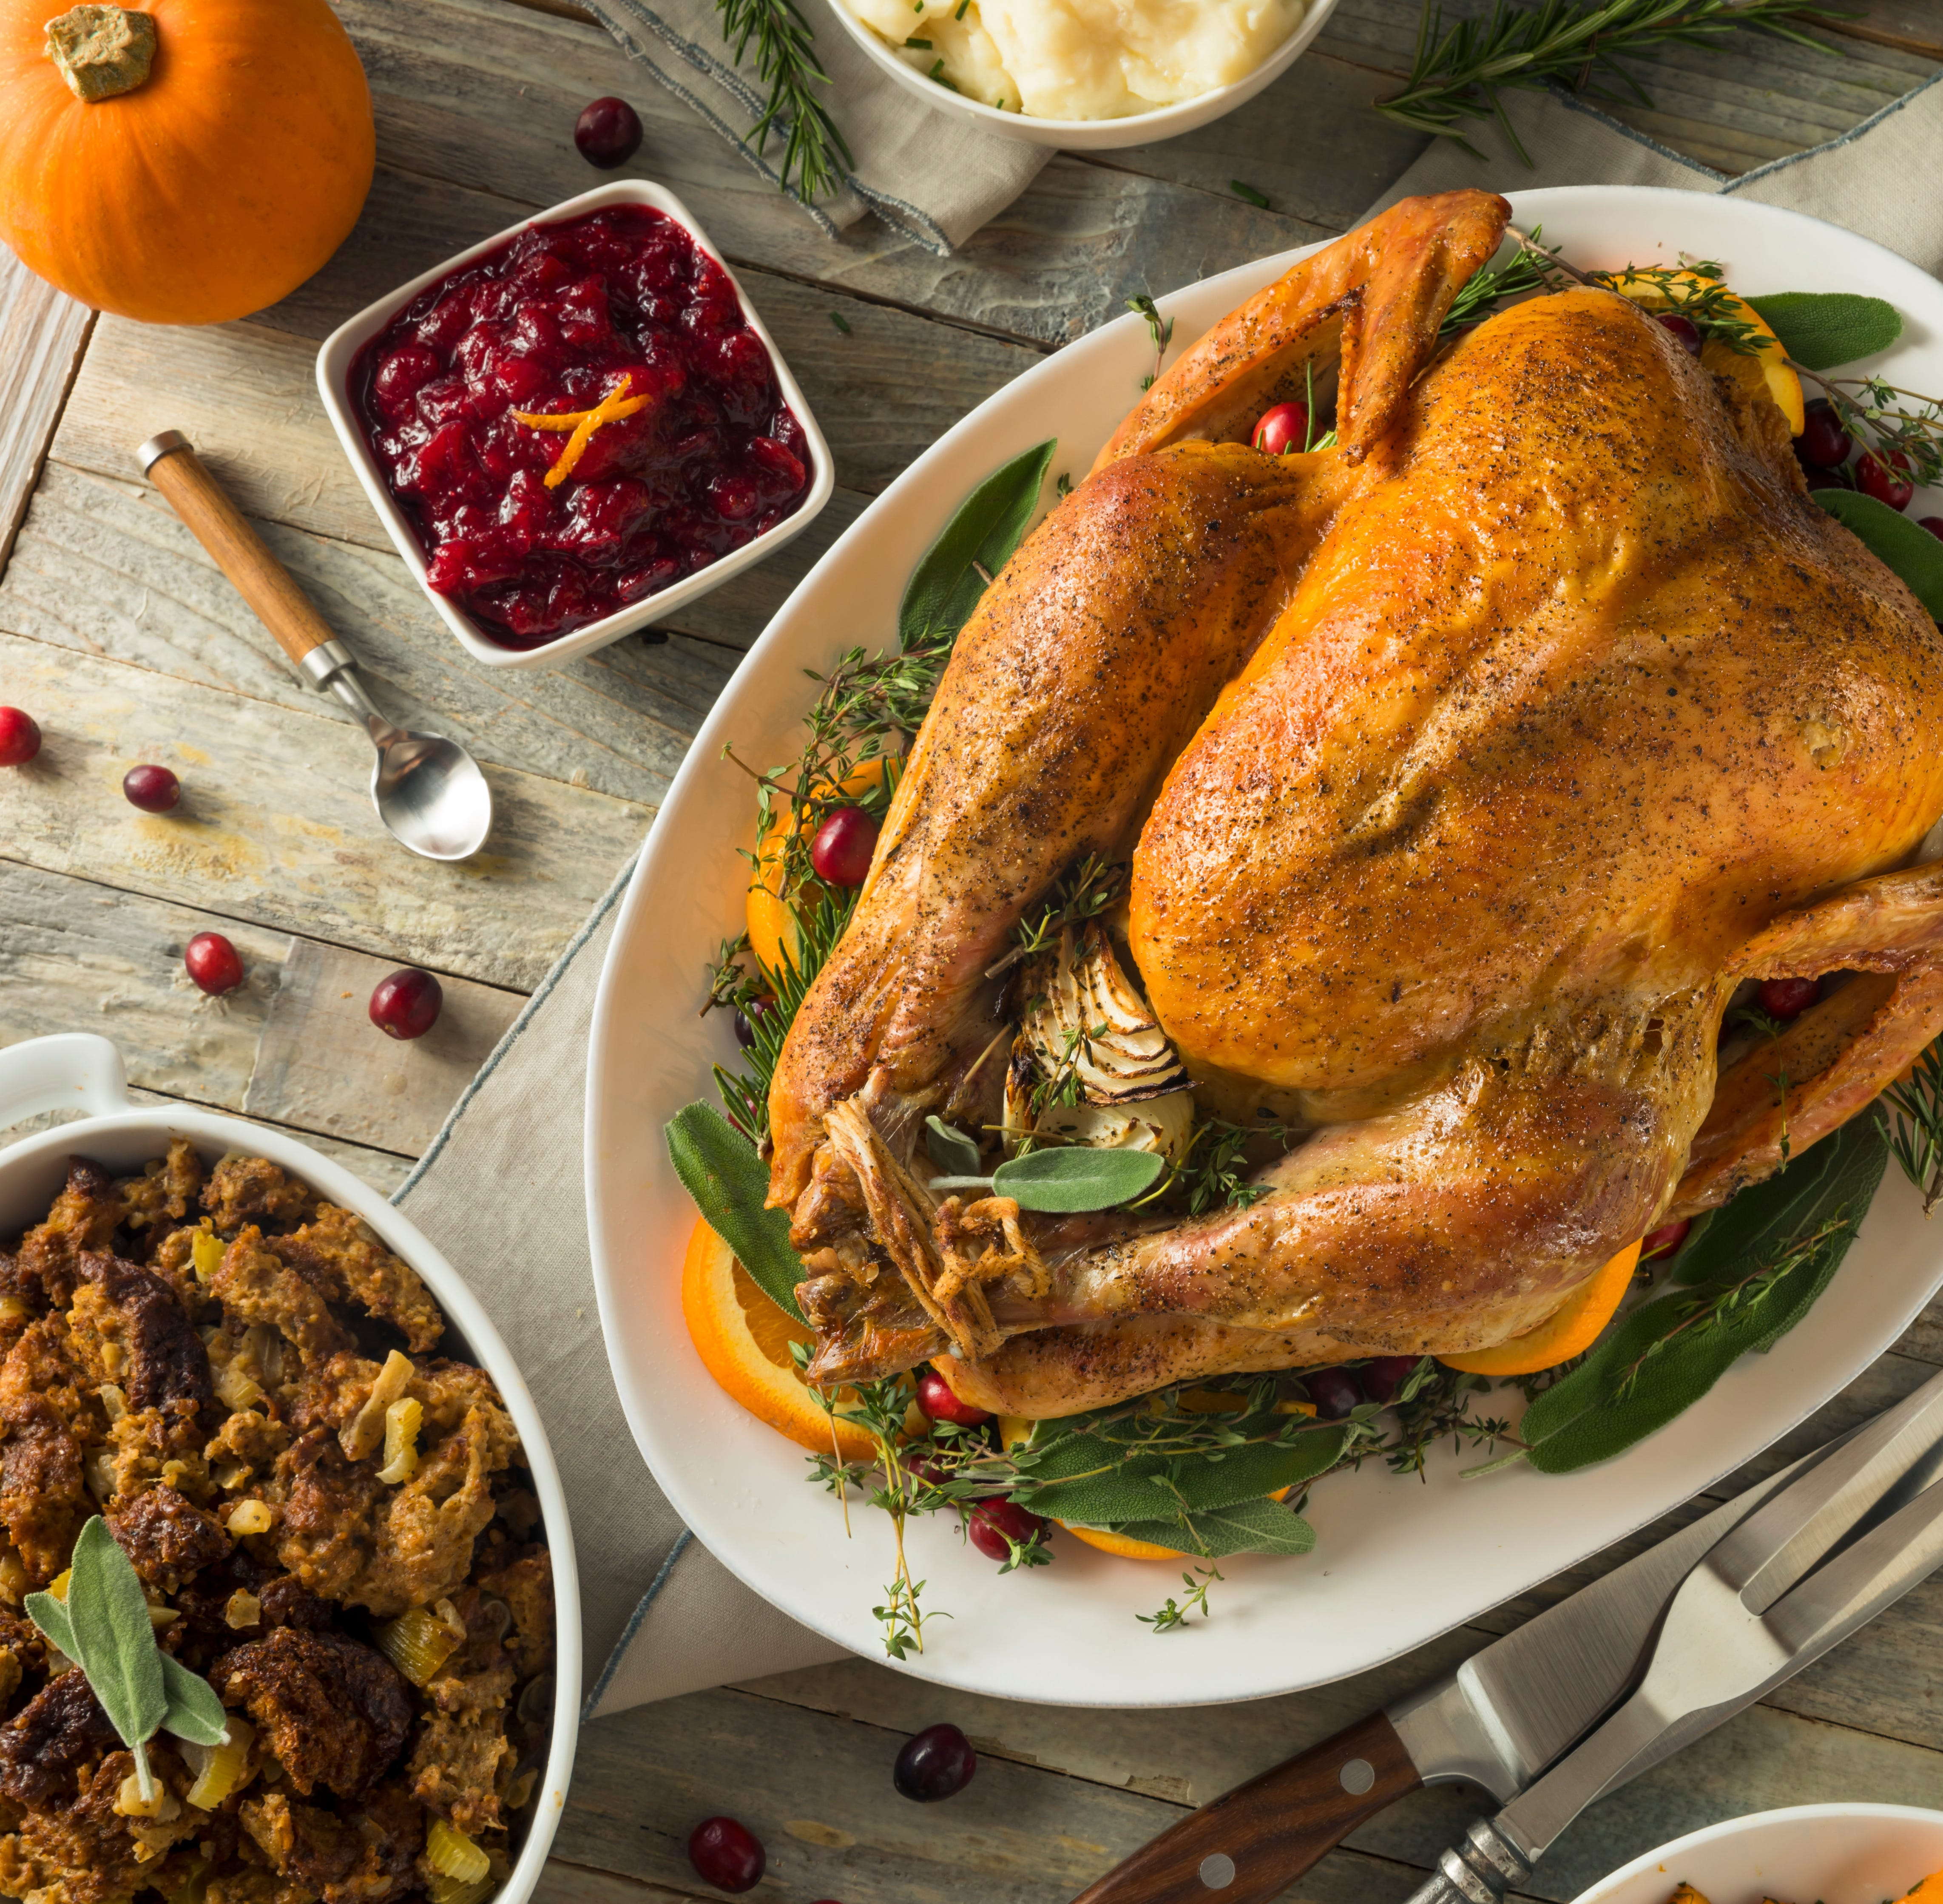 5 Shreveport places to get last-minute Thanksgiving dishes